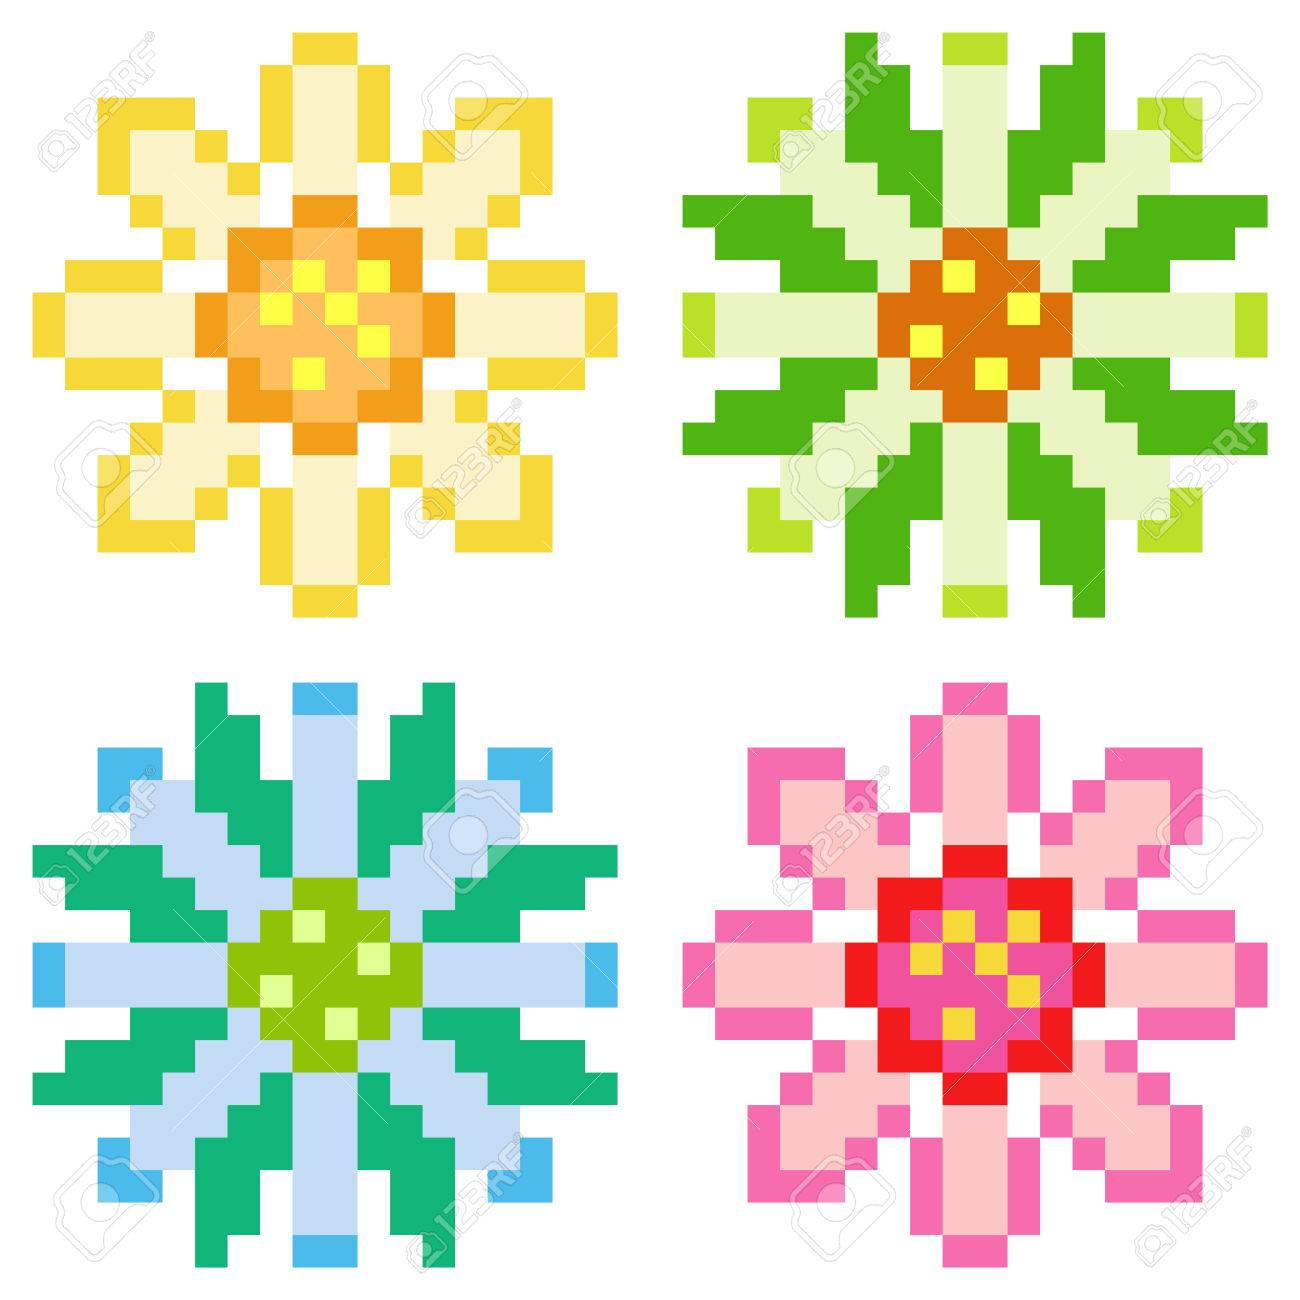 Awesome Pixel Art Flower @KoolGadgetz.com